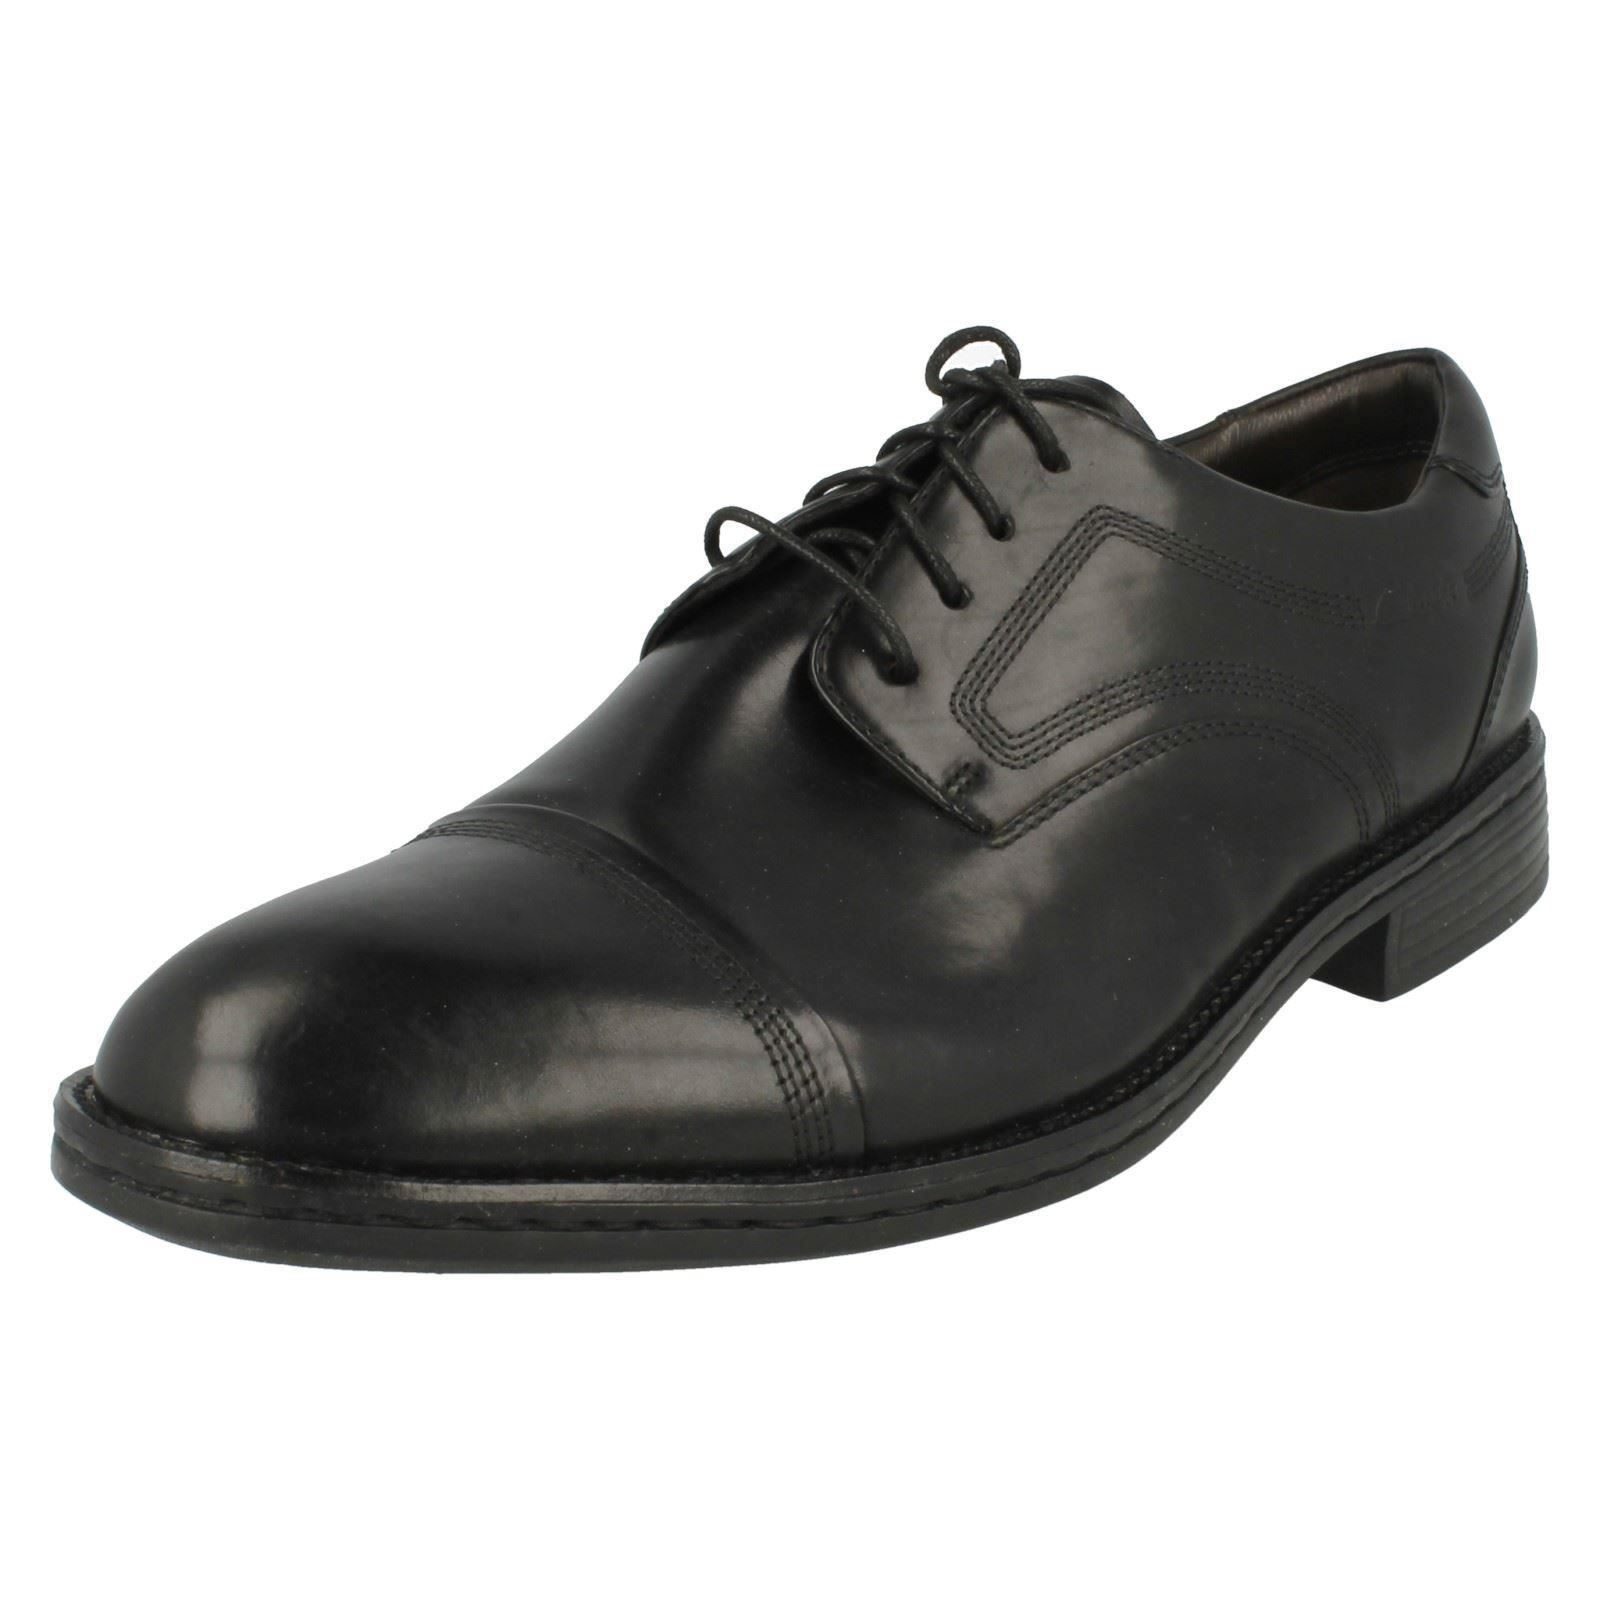 Mens Clarks Up Formal Active Air Lace Up Clarks Shoes 'Gable Epic' 19a953